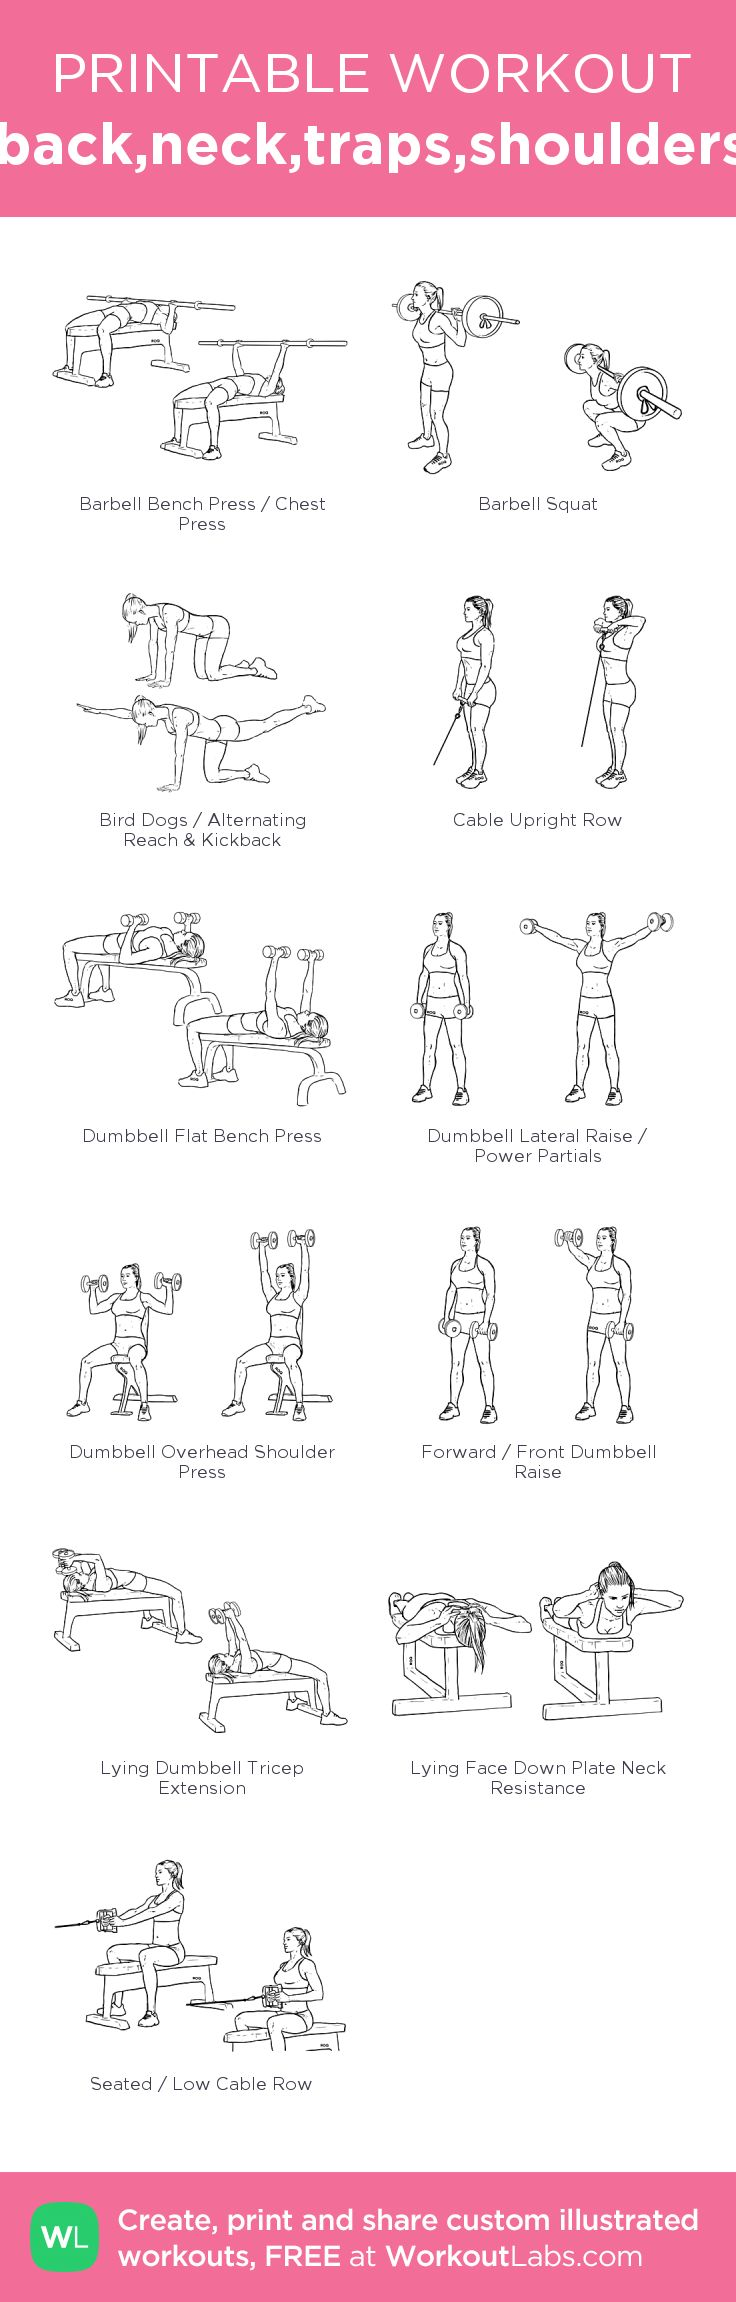 back,neck,traps,shoulders: my visual workout created at WorkoutLabs.com • Click through to customize and download as a FREE PDF! #customworkout